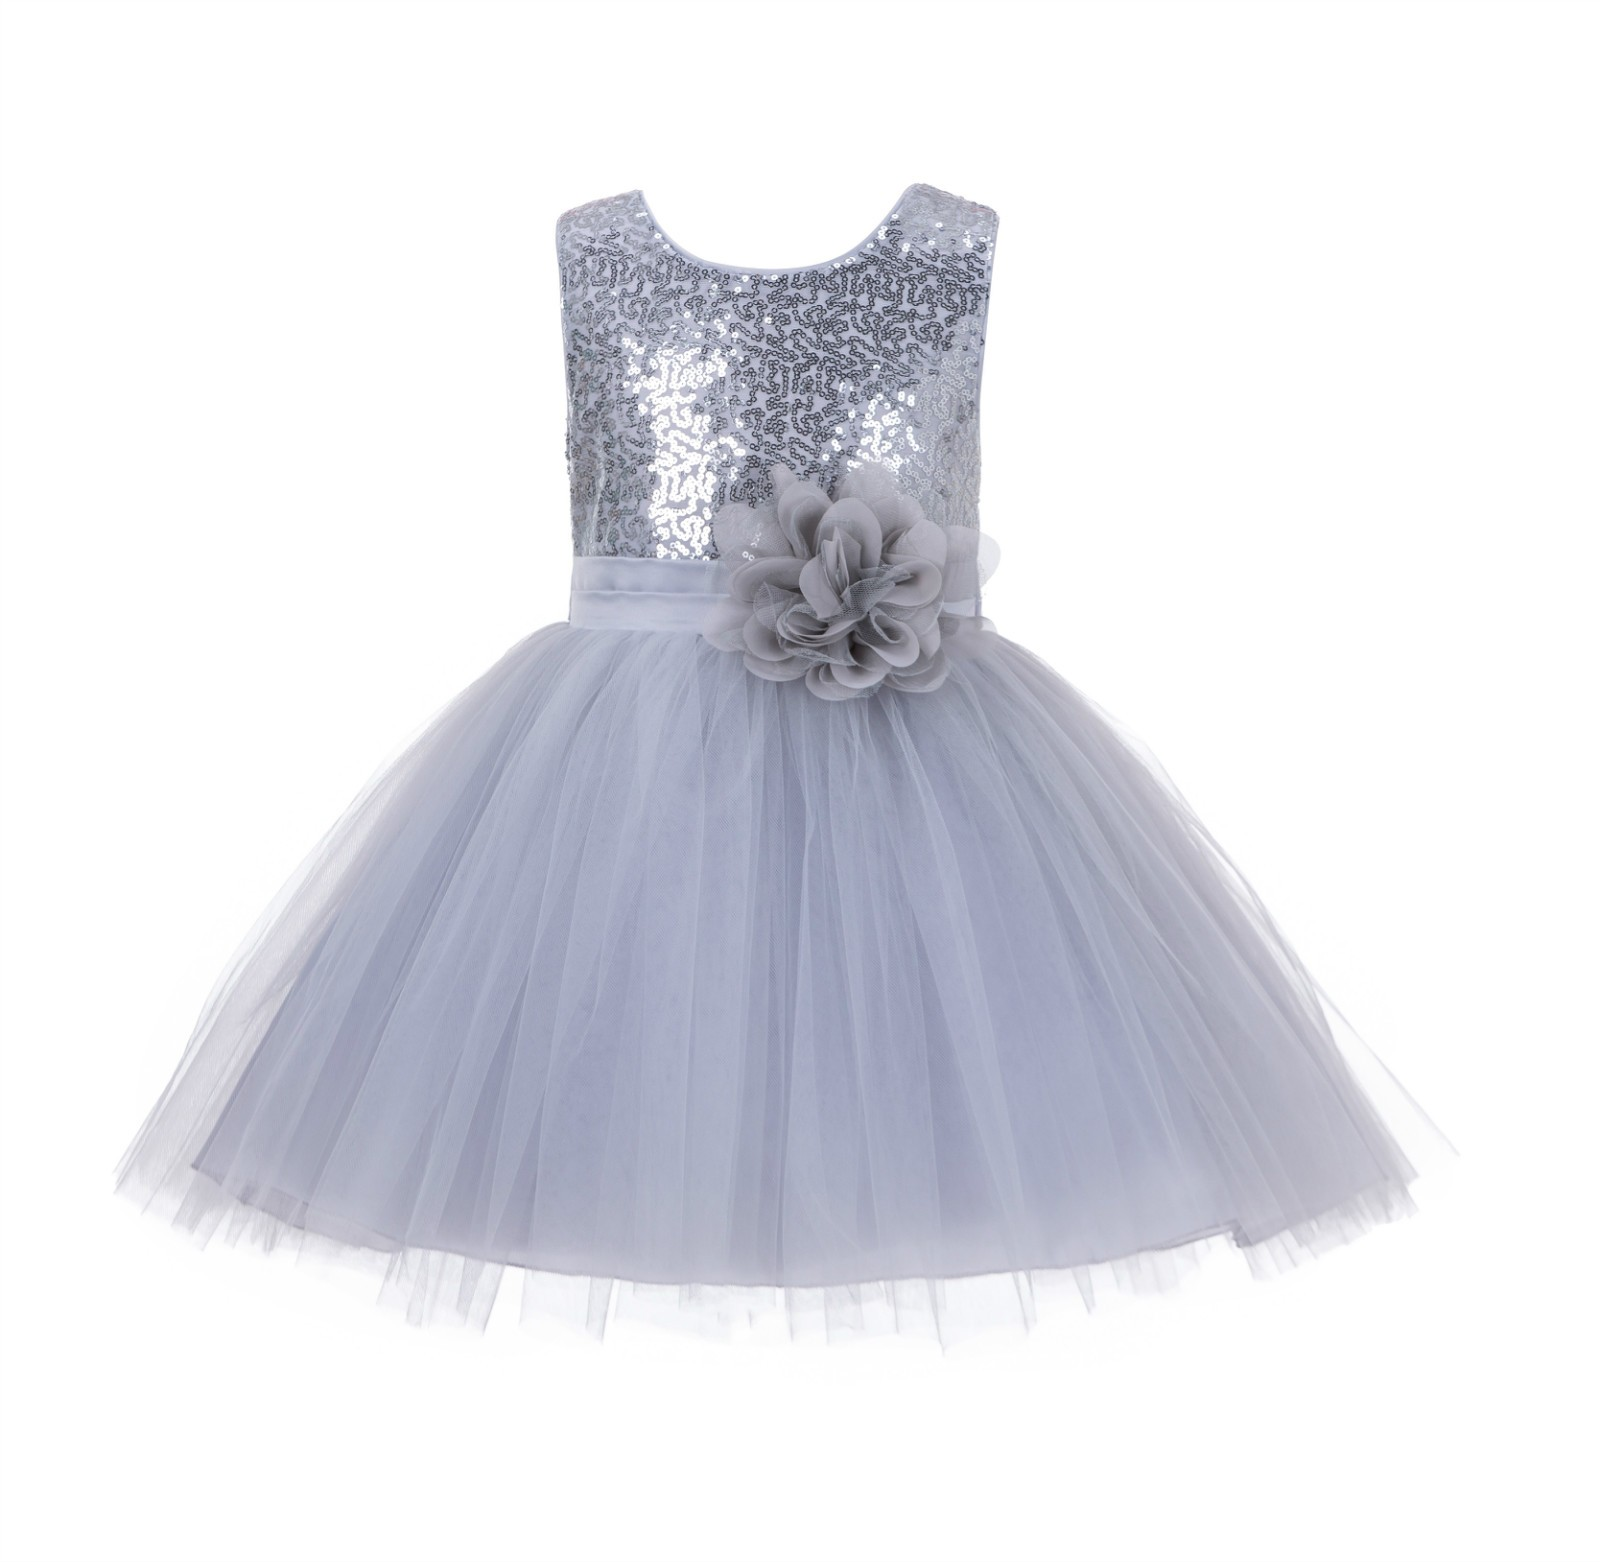 4a475ea3 Silver Dazzling Sequins Mesh Tulle Flower Girl Dress Elegant 124NF ...